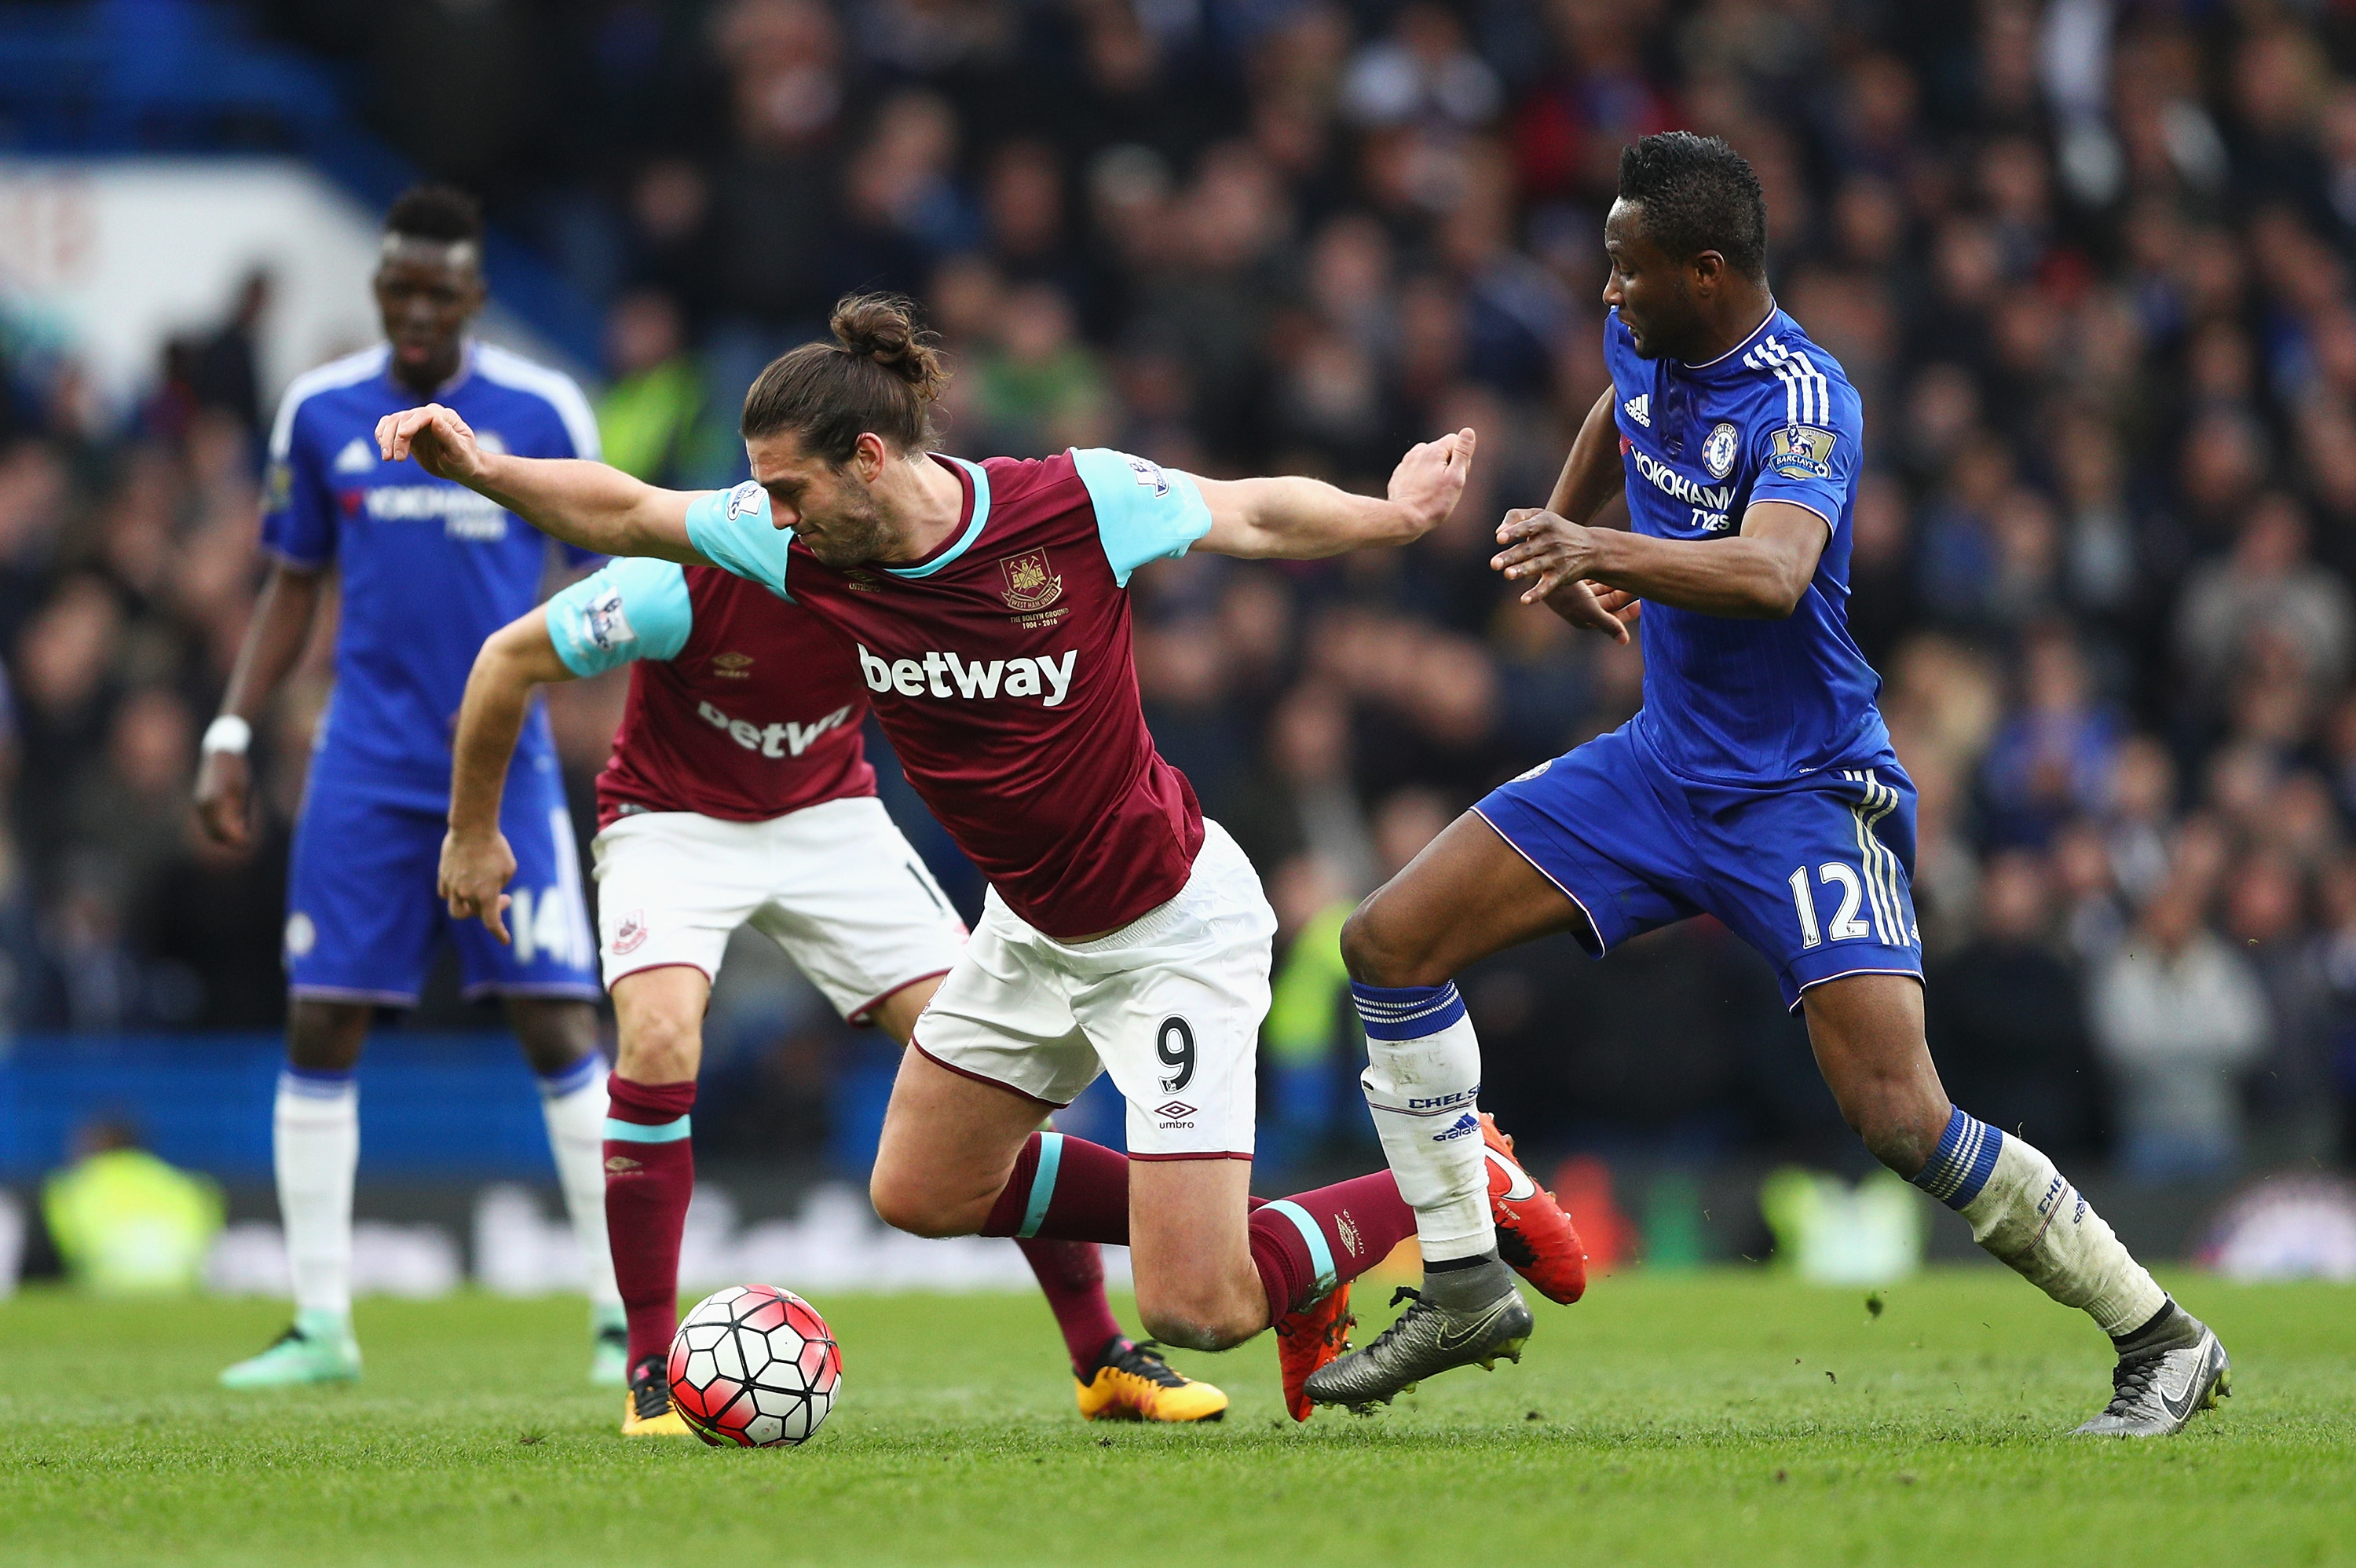 LONDON, ENGLAND - MARCH 19: Andy Carroll of West Ham United is challenged by John Mikel Obi of Chelsea during the Barclays Premier League match between Chelsea and West Ham United at Stamford Bridge on March 19, 2016 in London, United Kingdom. (Photo by Paul Gilham/Getty Images)